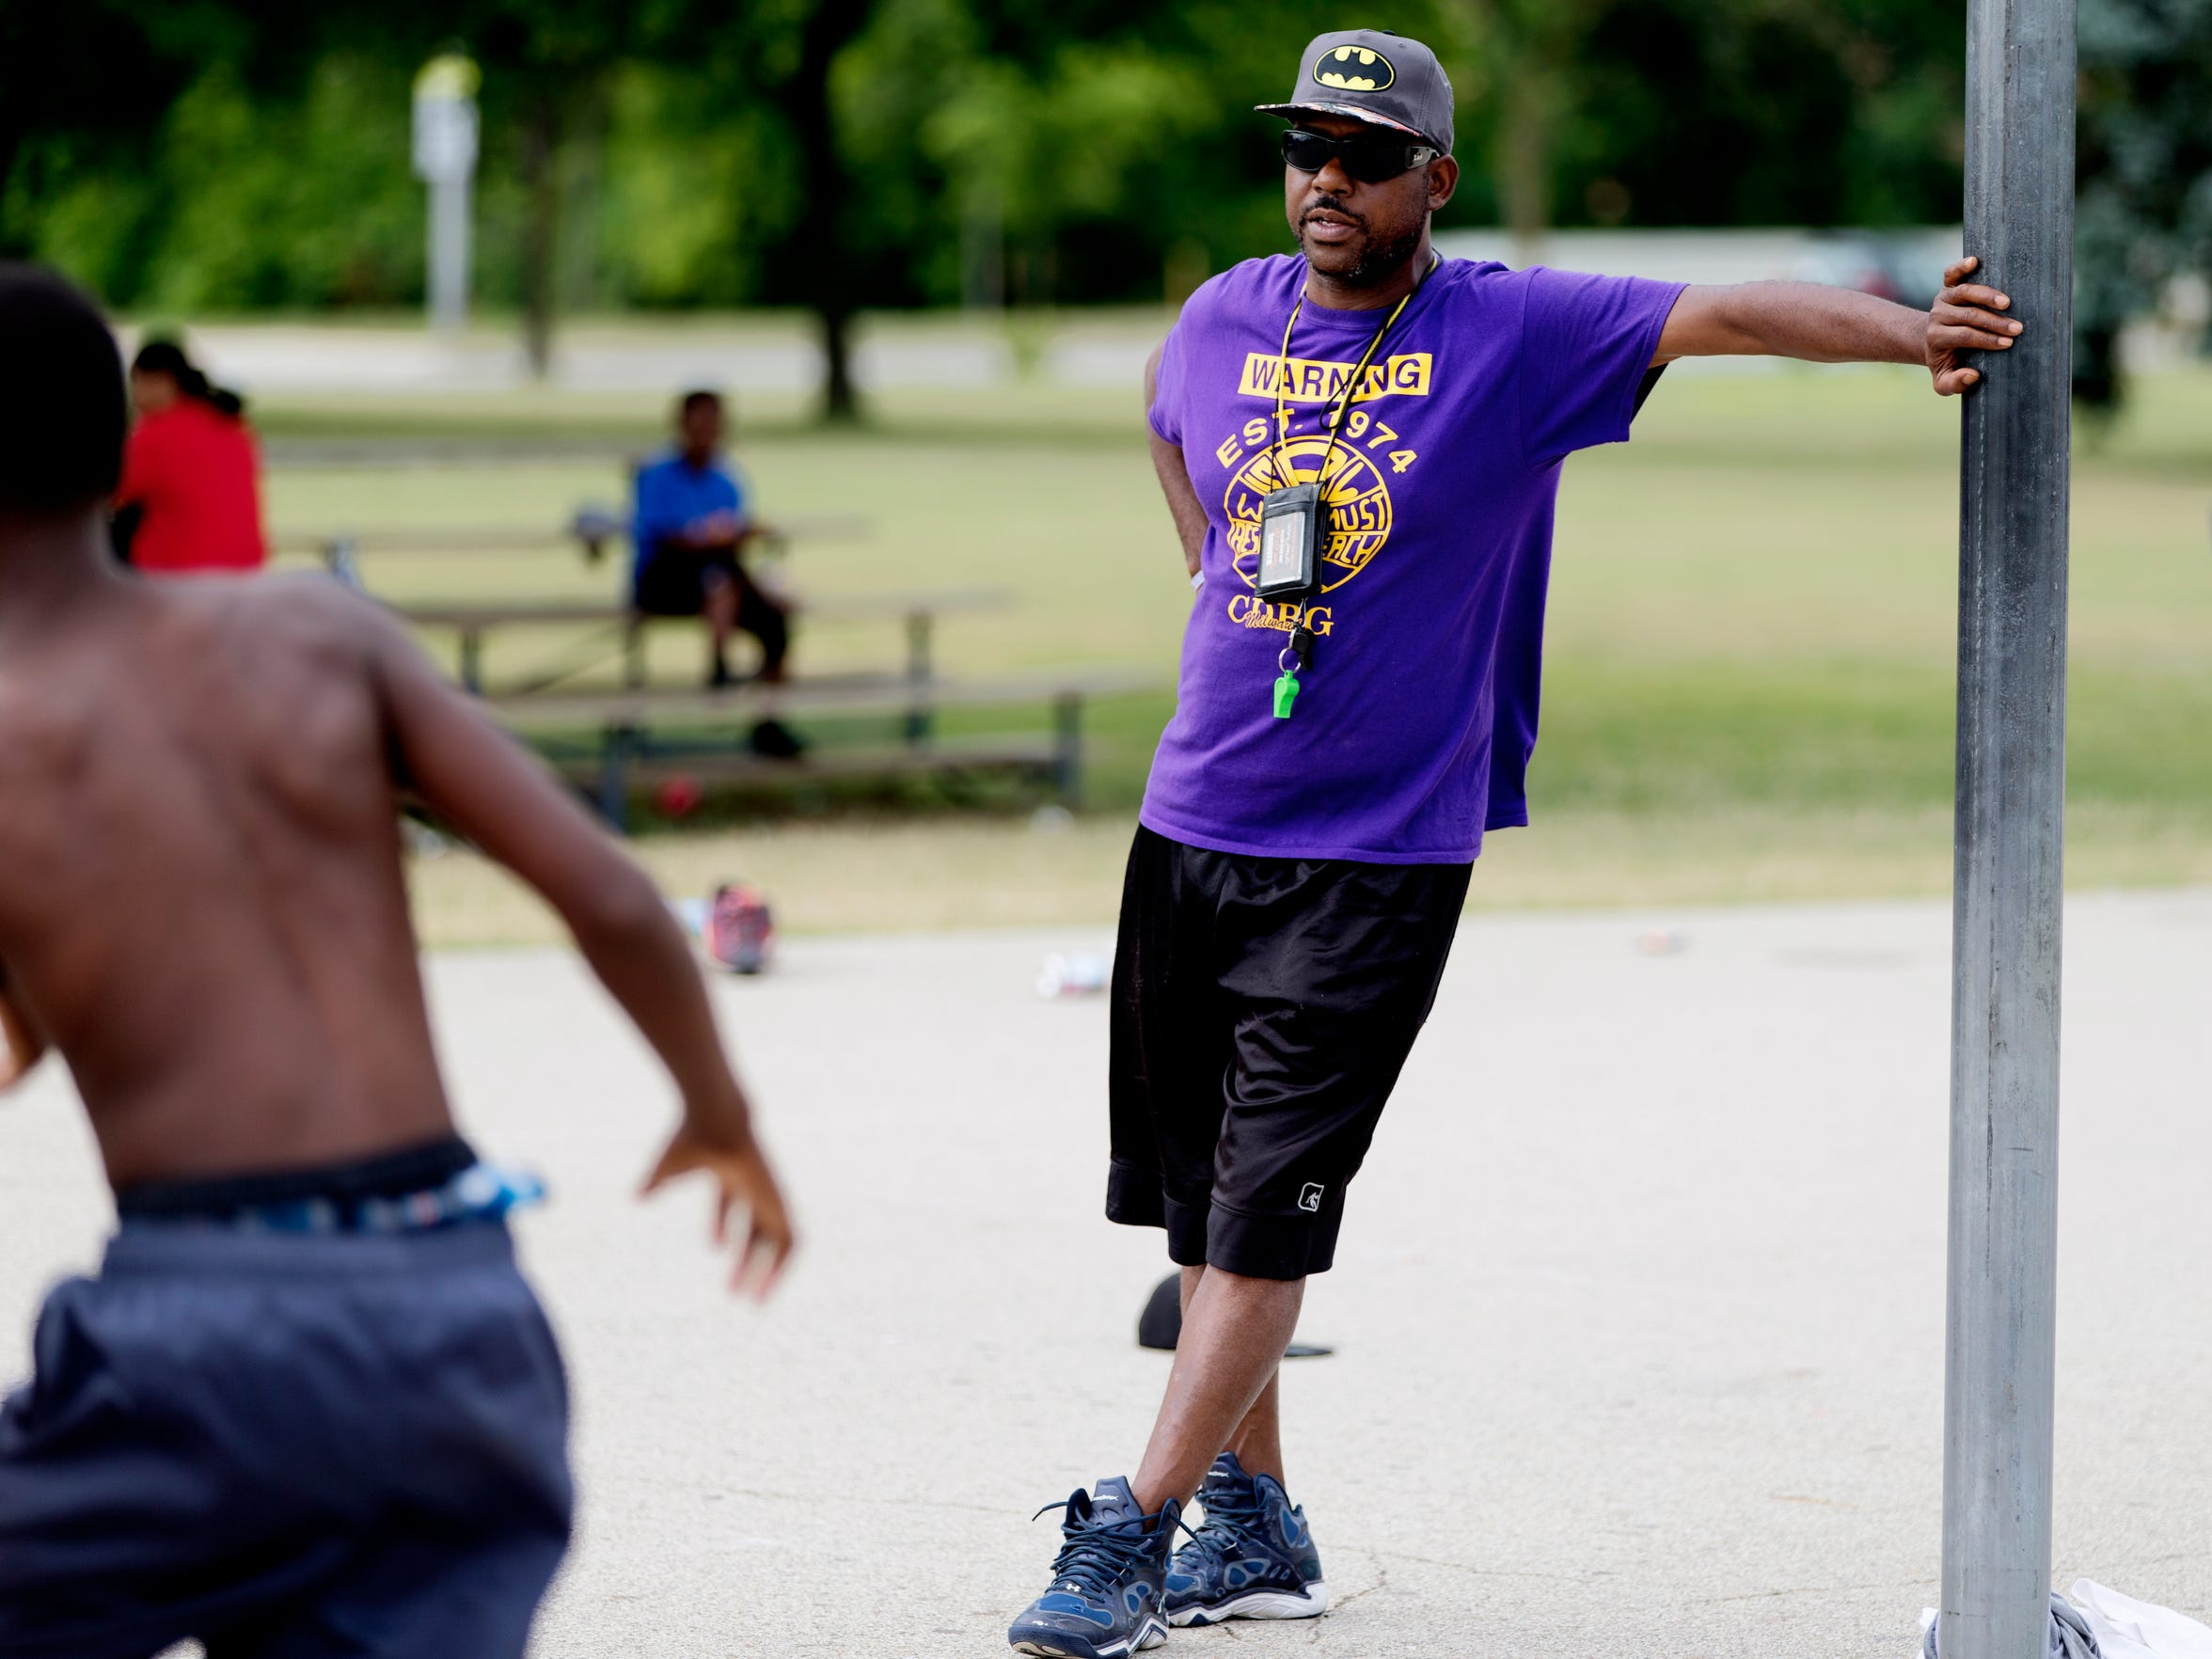 Eric Moore, 48, coaches practice at Meaux Park in Milwaukee.